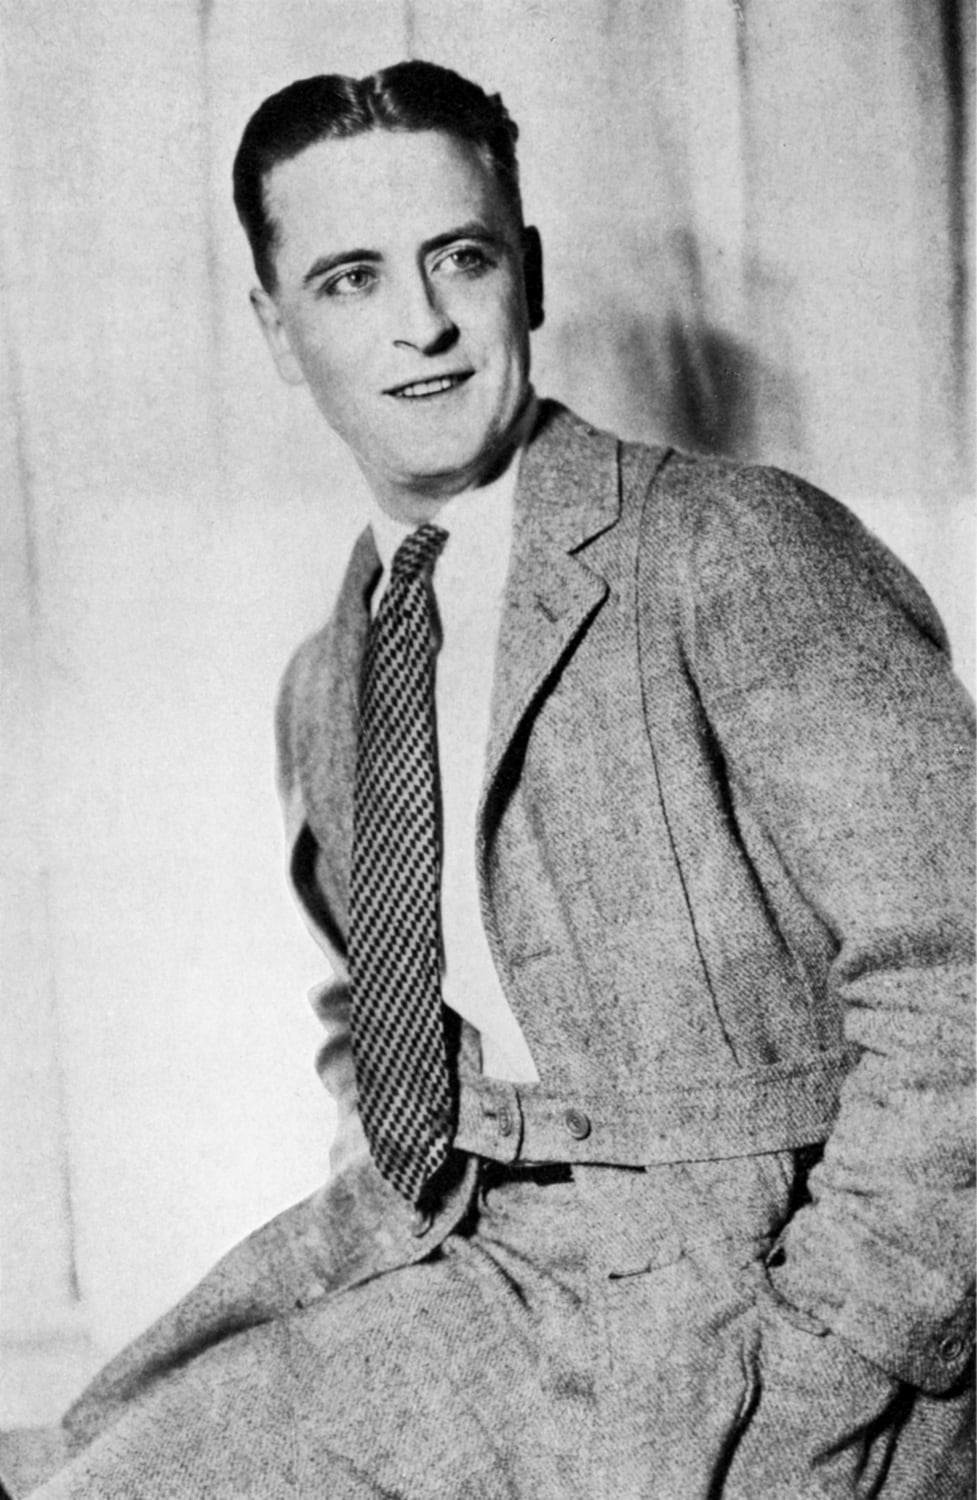 """Il signor Scott Fitzgerald merita una bella scossa. Il grande Gatsby è una storia assurda, sia considerata come romanzo, melodramma, o mera registrazione di New York"" – L.P. Hartley, The Saturday Review, 1925 -"